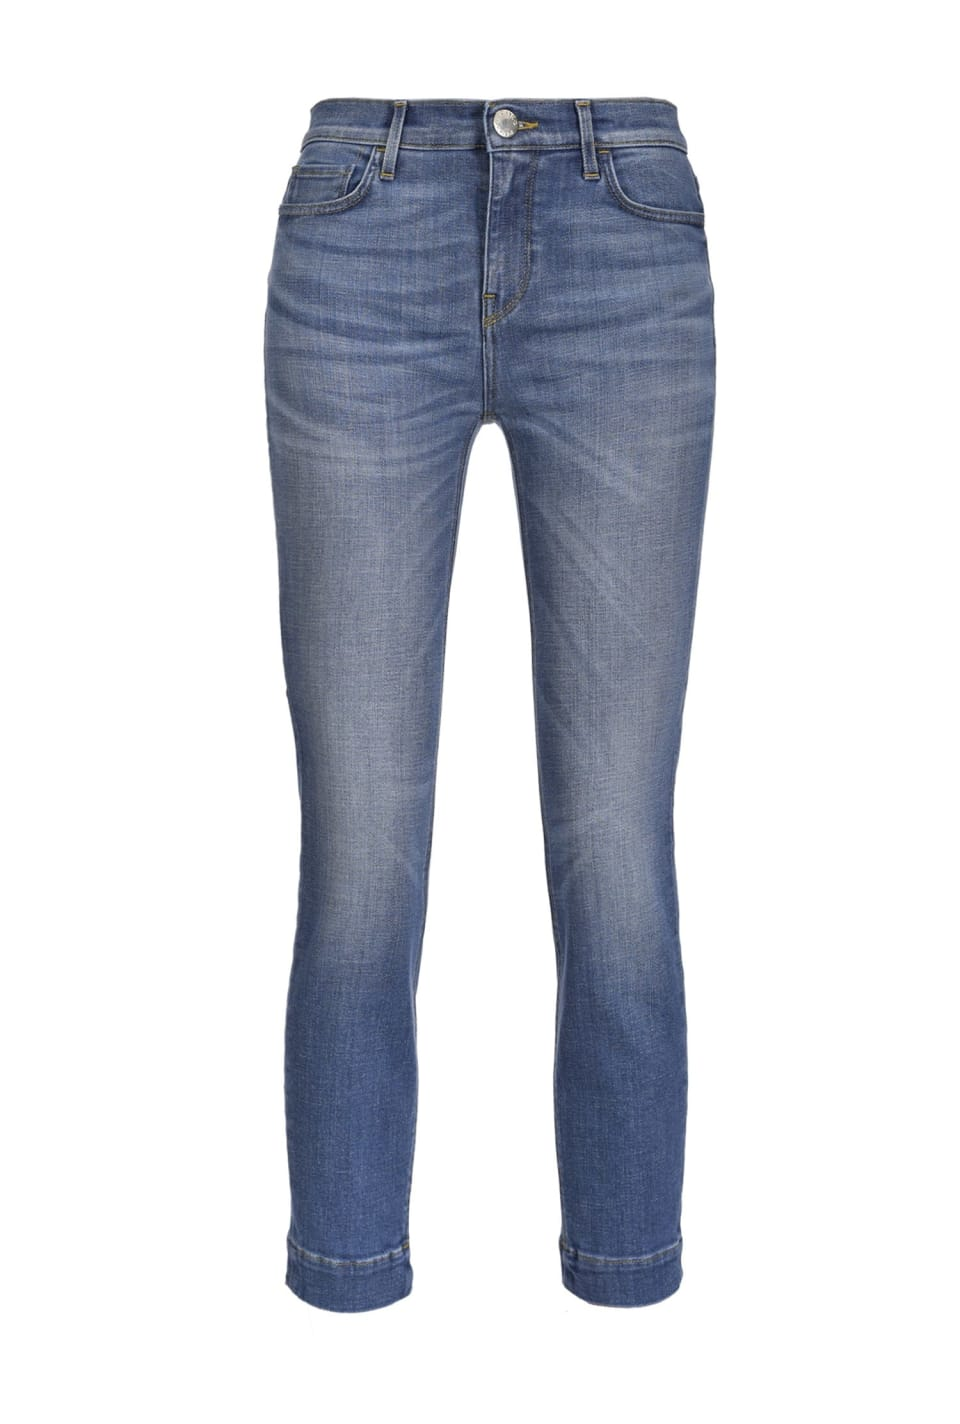 Skinny cropped jeans in comfort denim